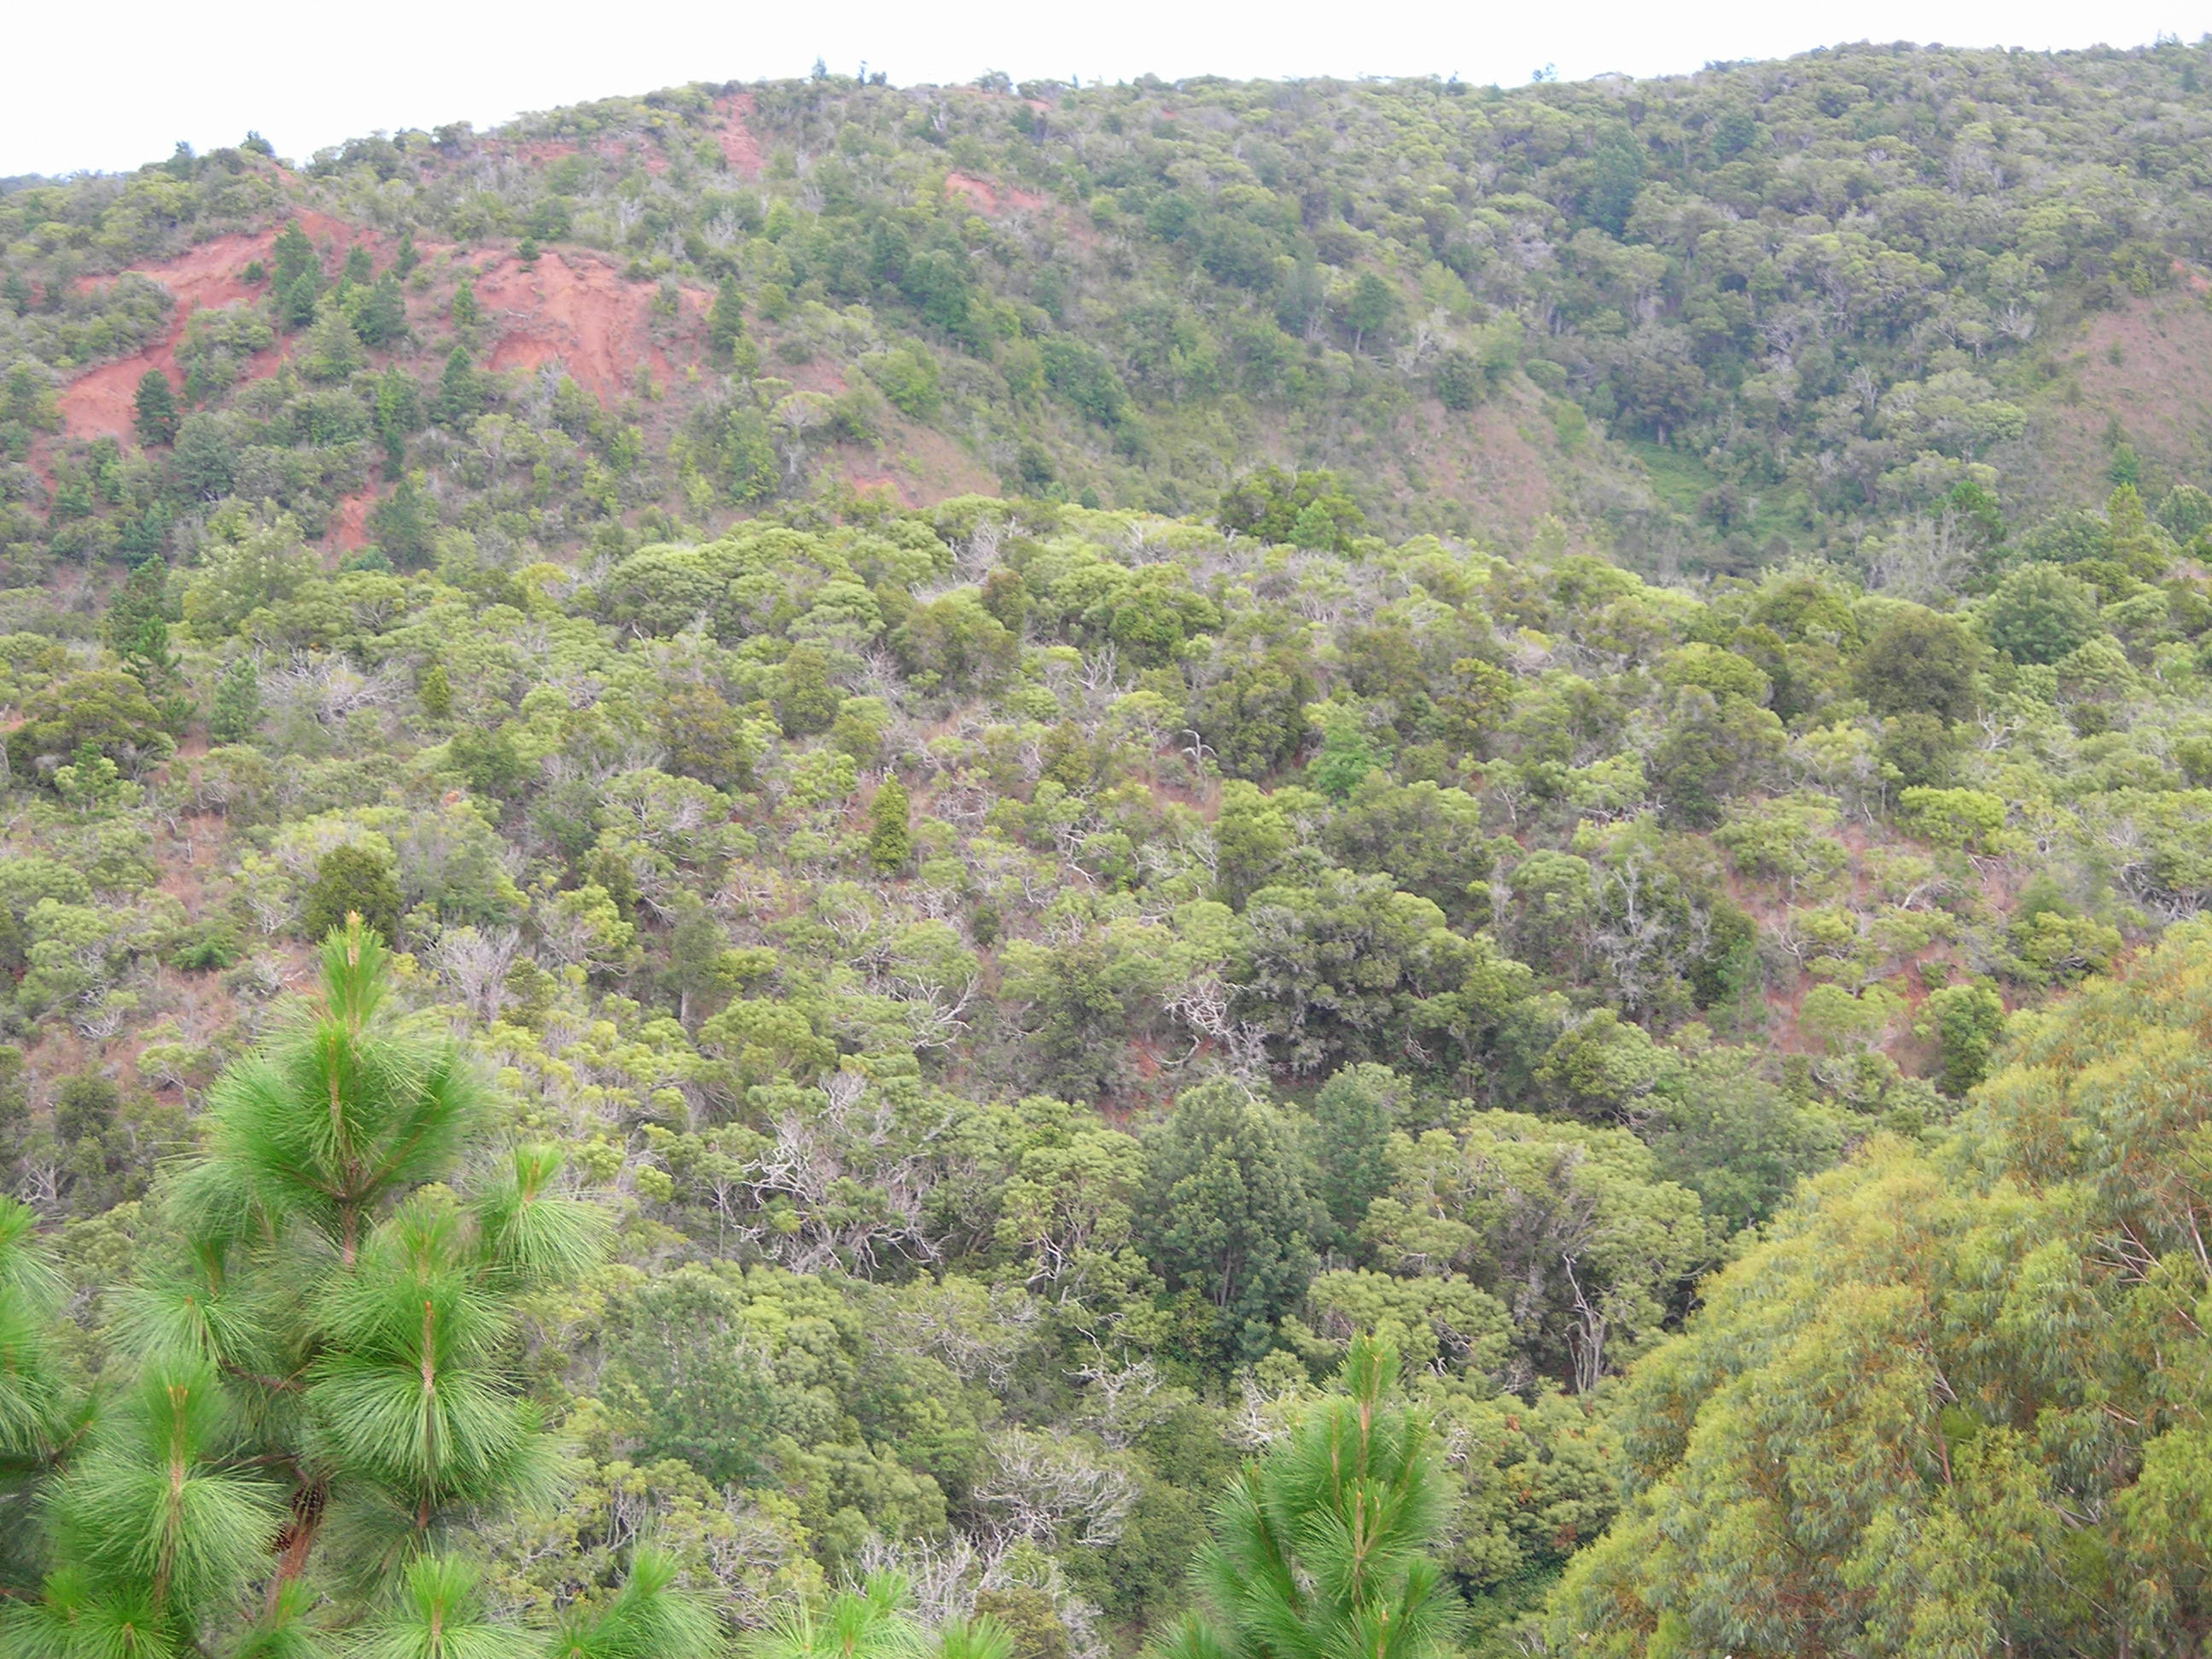 Sub Tropical Dry Ever green Forest